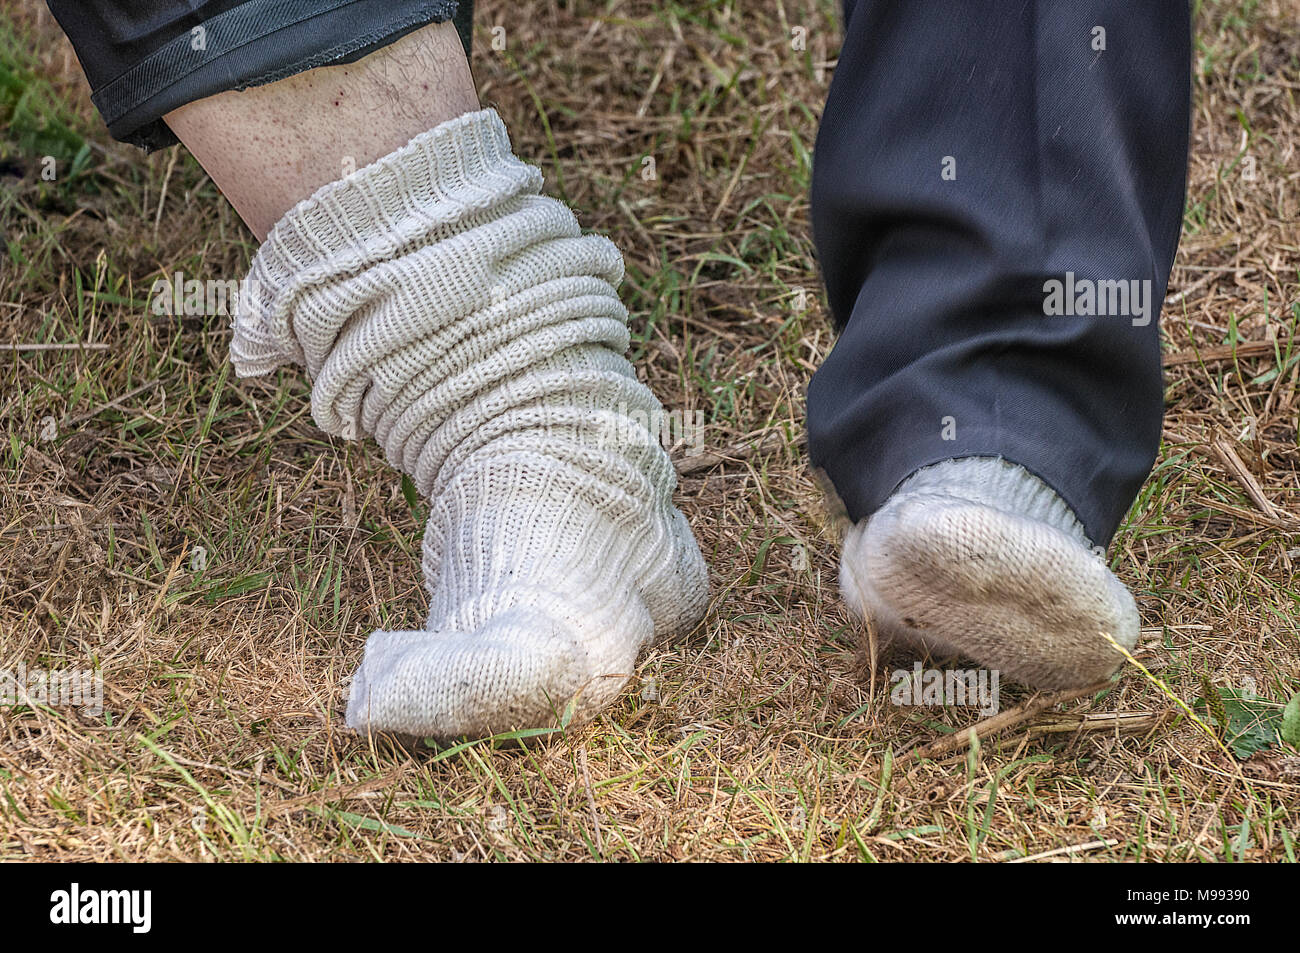 two thick feet with white wool socks on - Stock Image